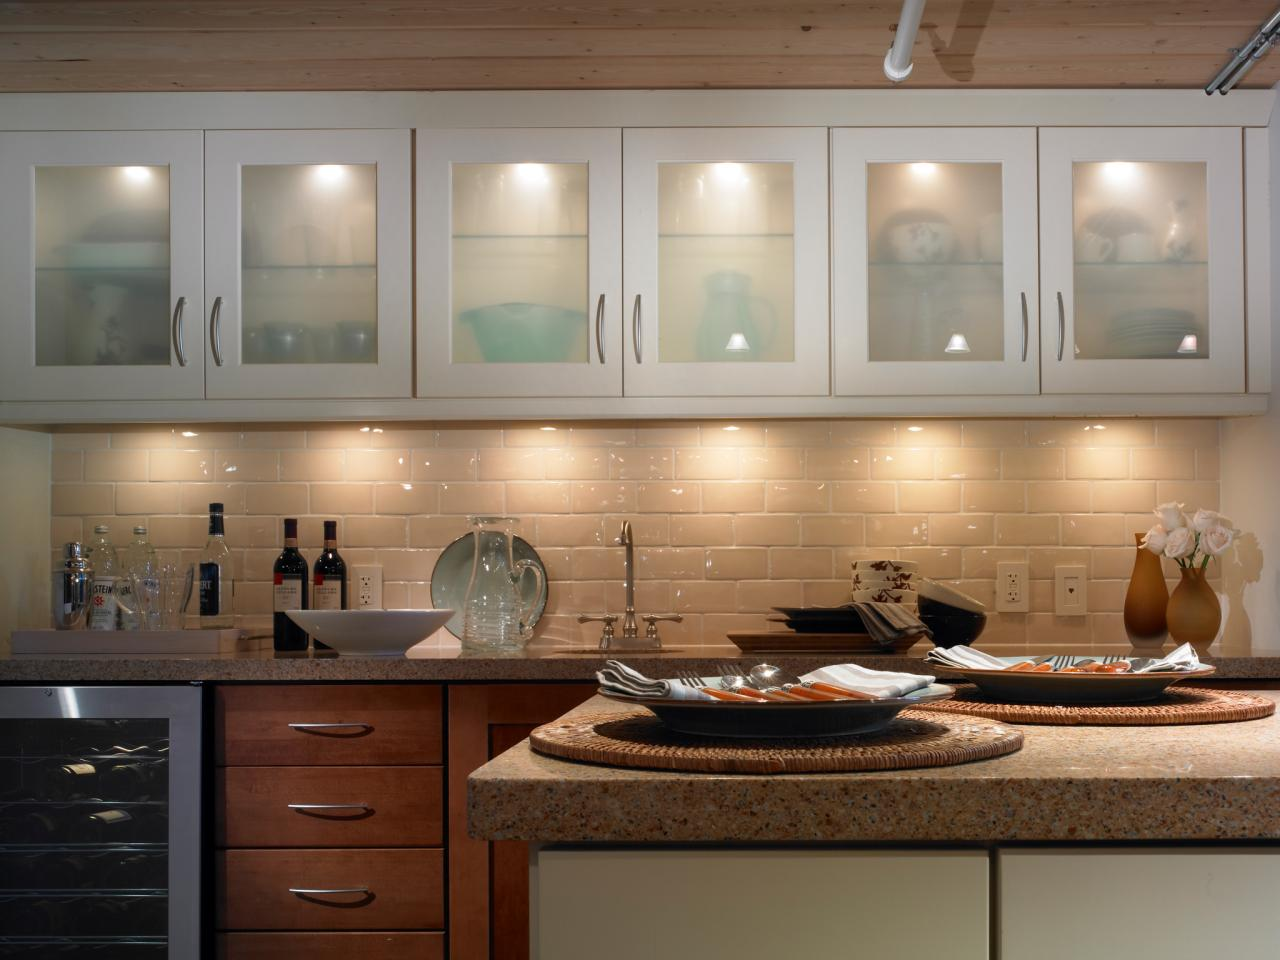 good Spotlights For Kitchen Cabinets #1: Making the Layers Work Together